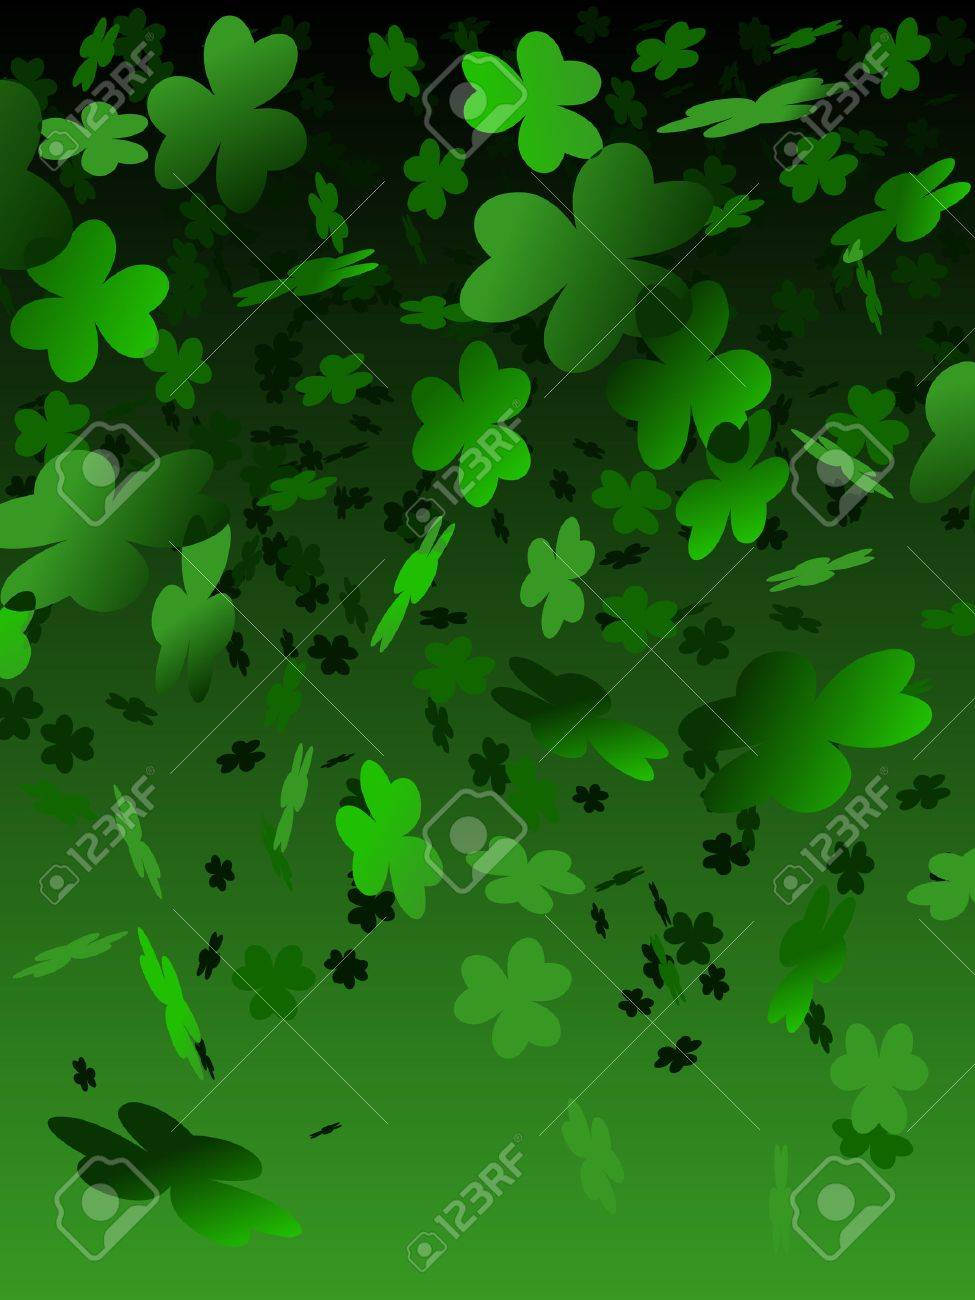 green shamrock background royalty free cliparts vectors and